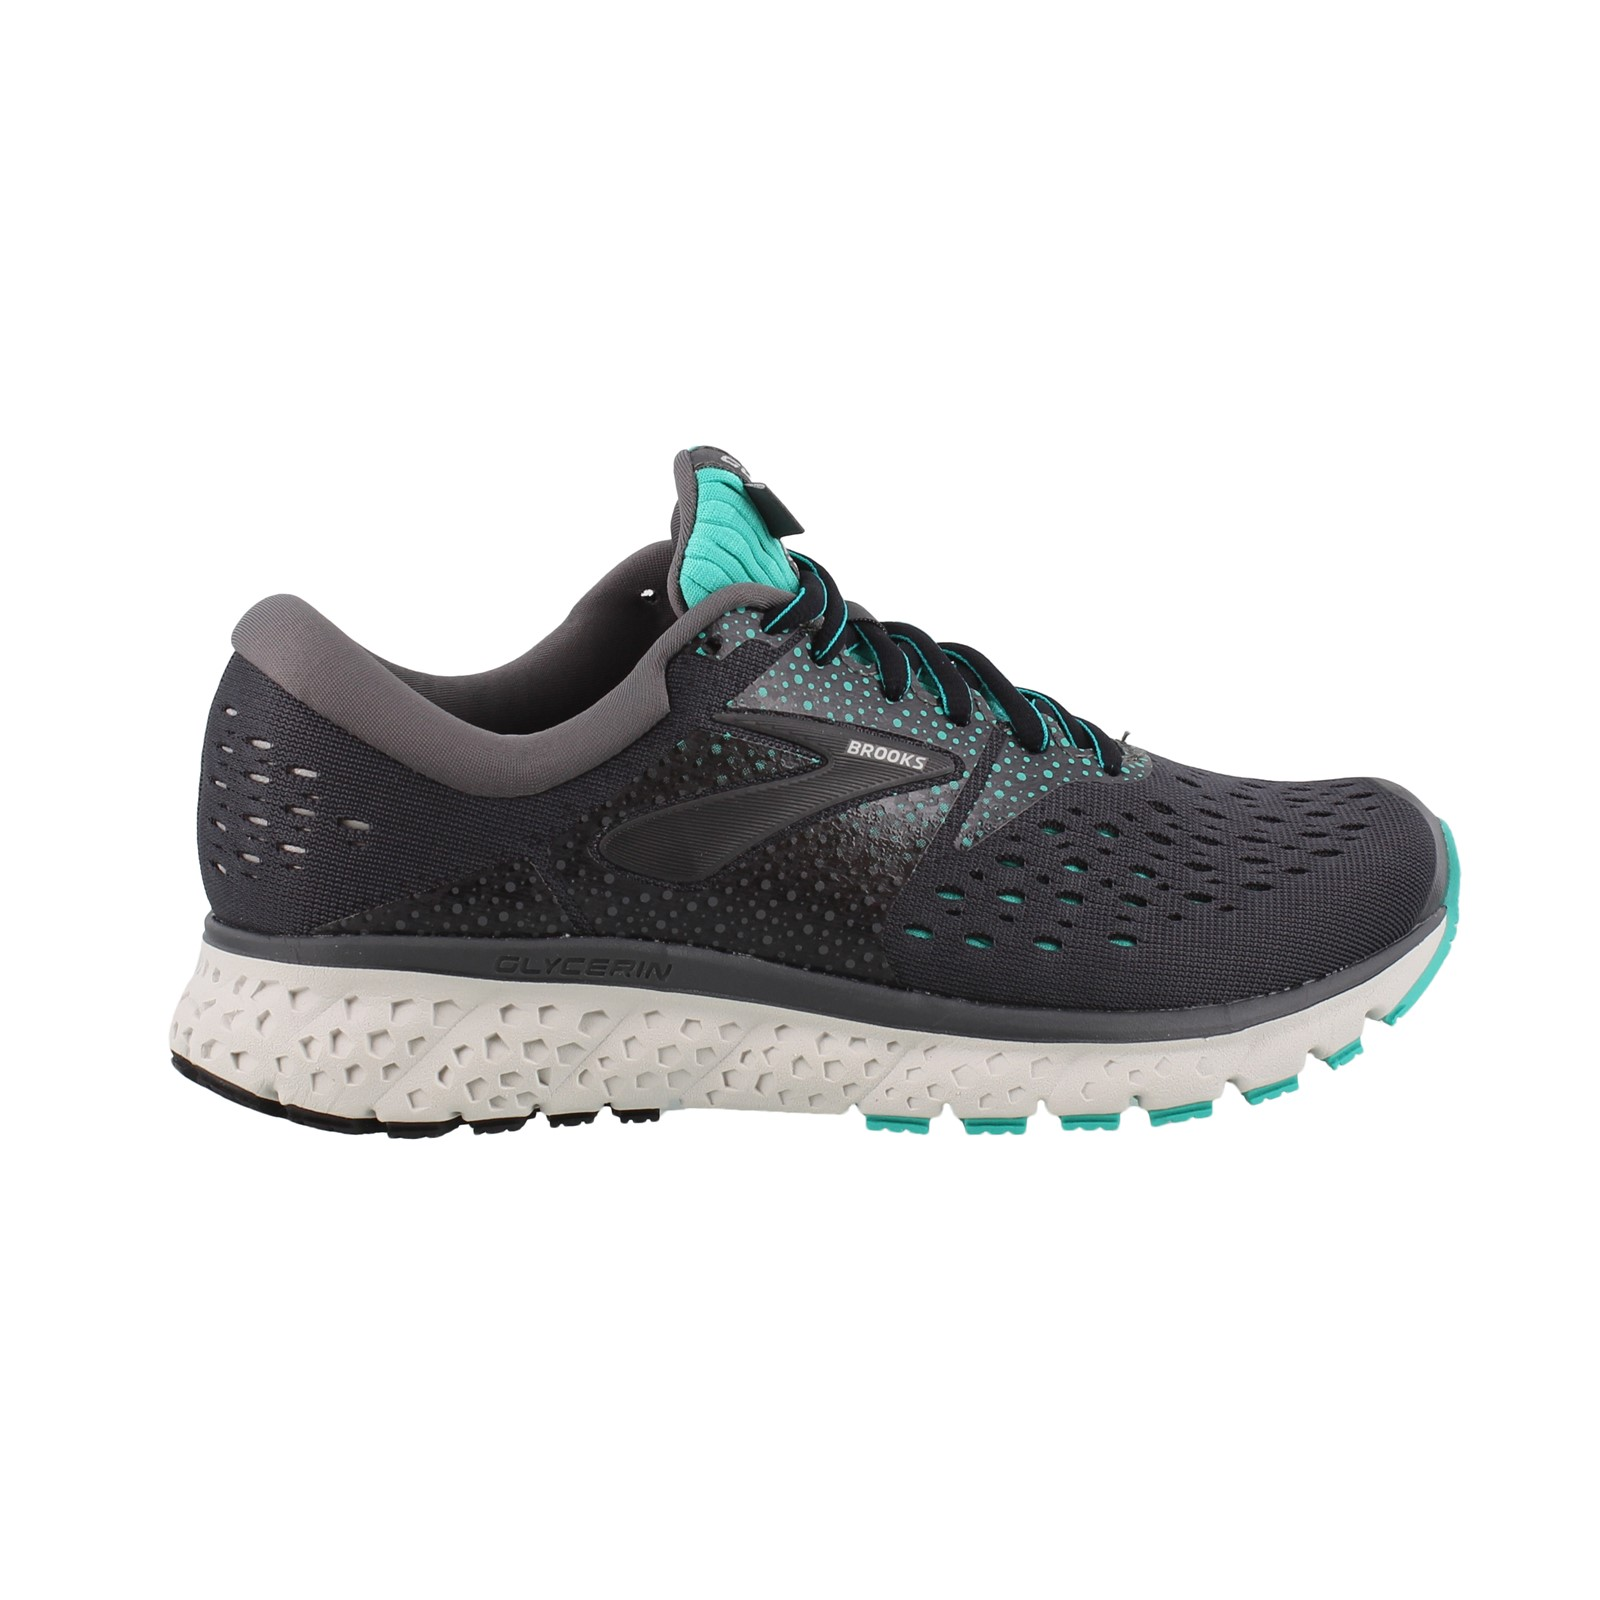 Women's Brooks, Glycerin 16 Running Shoe